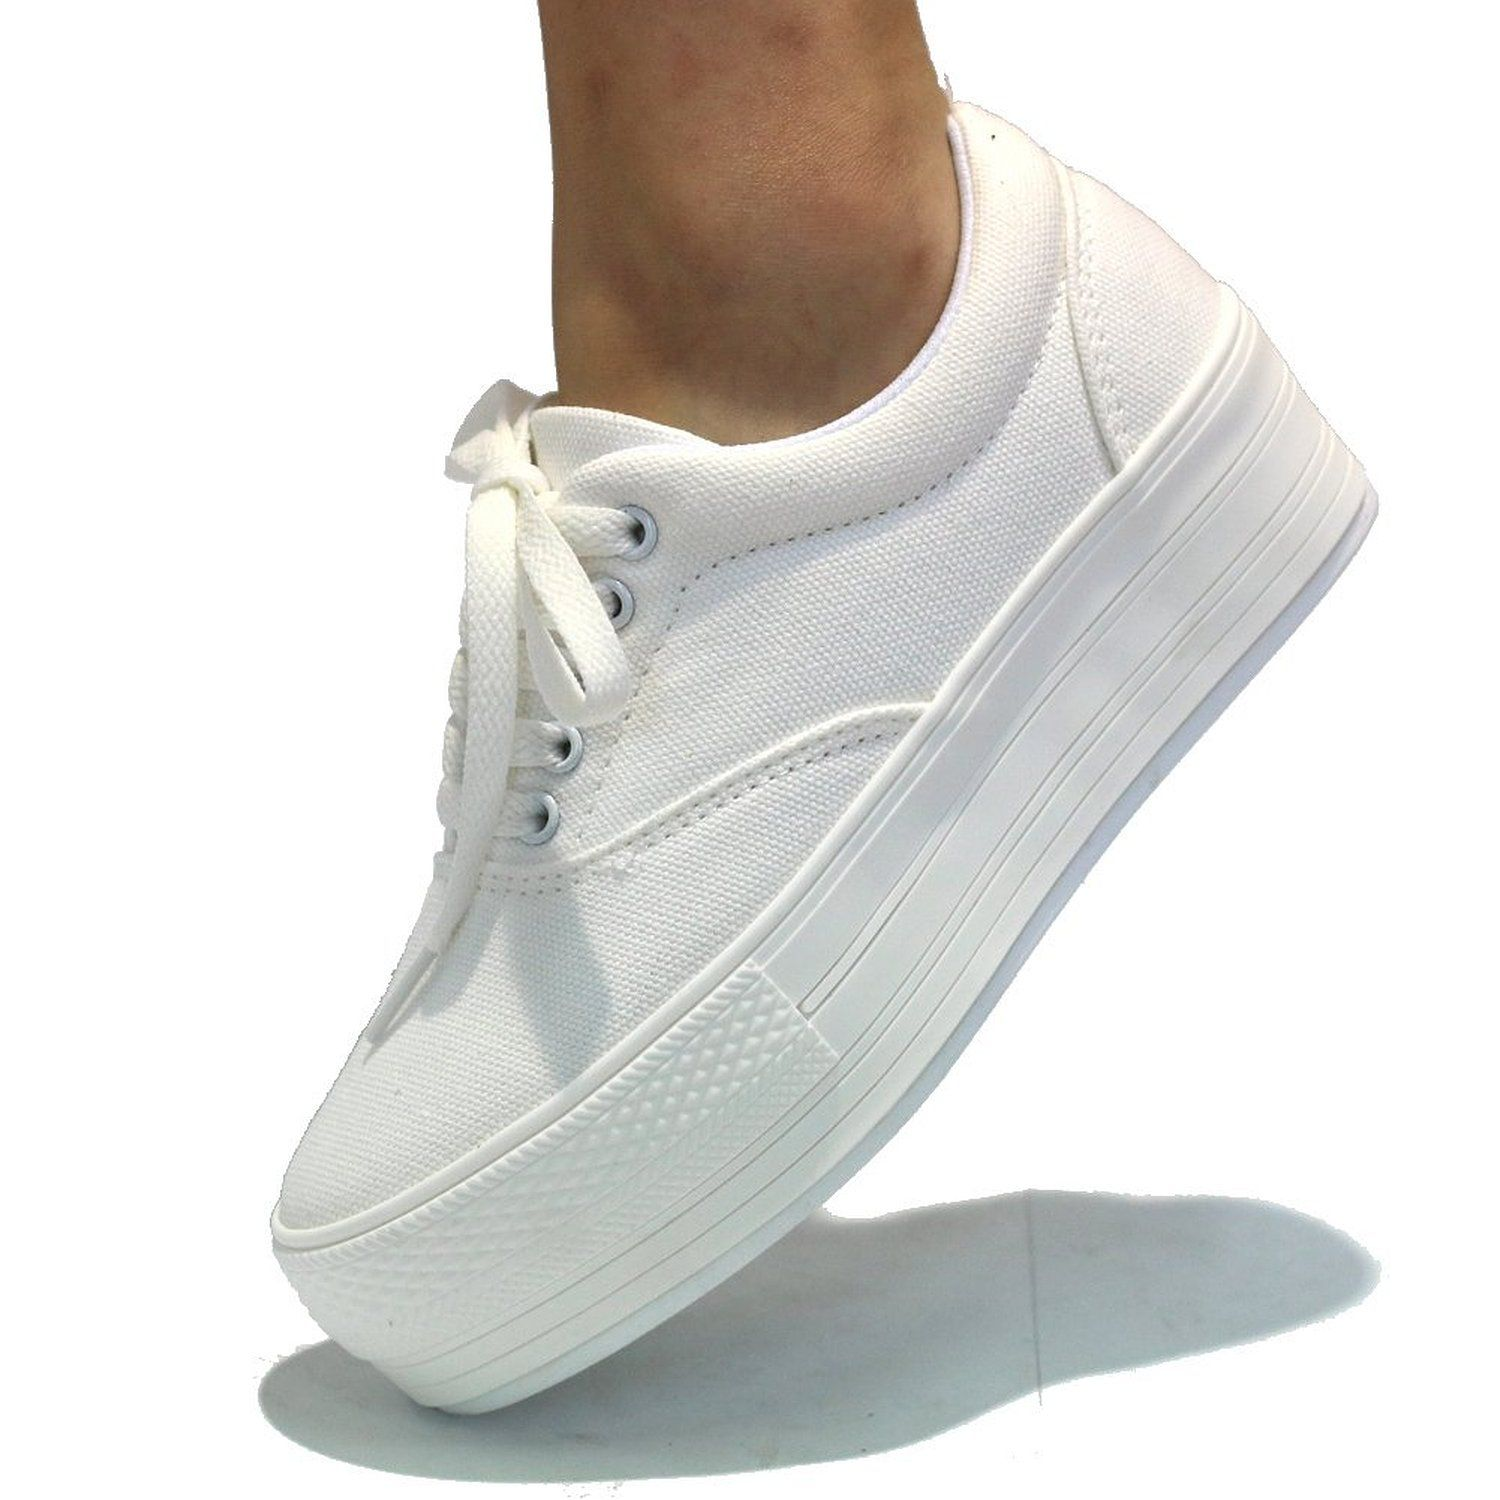 6c6af0b7bc9acf Amazon.com  Women s White Low Canvas Platform Sneakers  Clothing ...